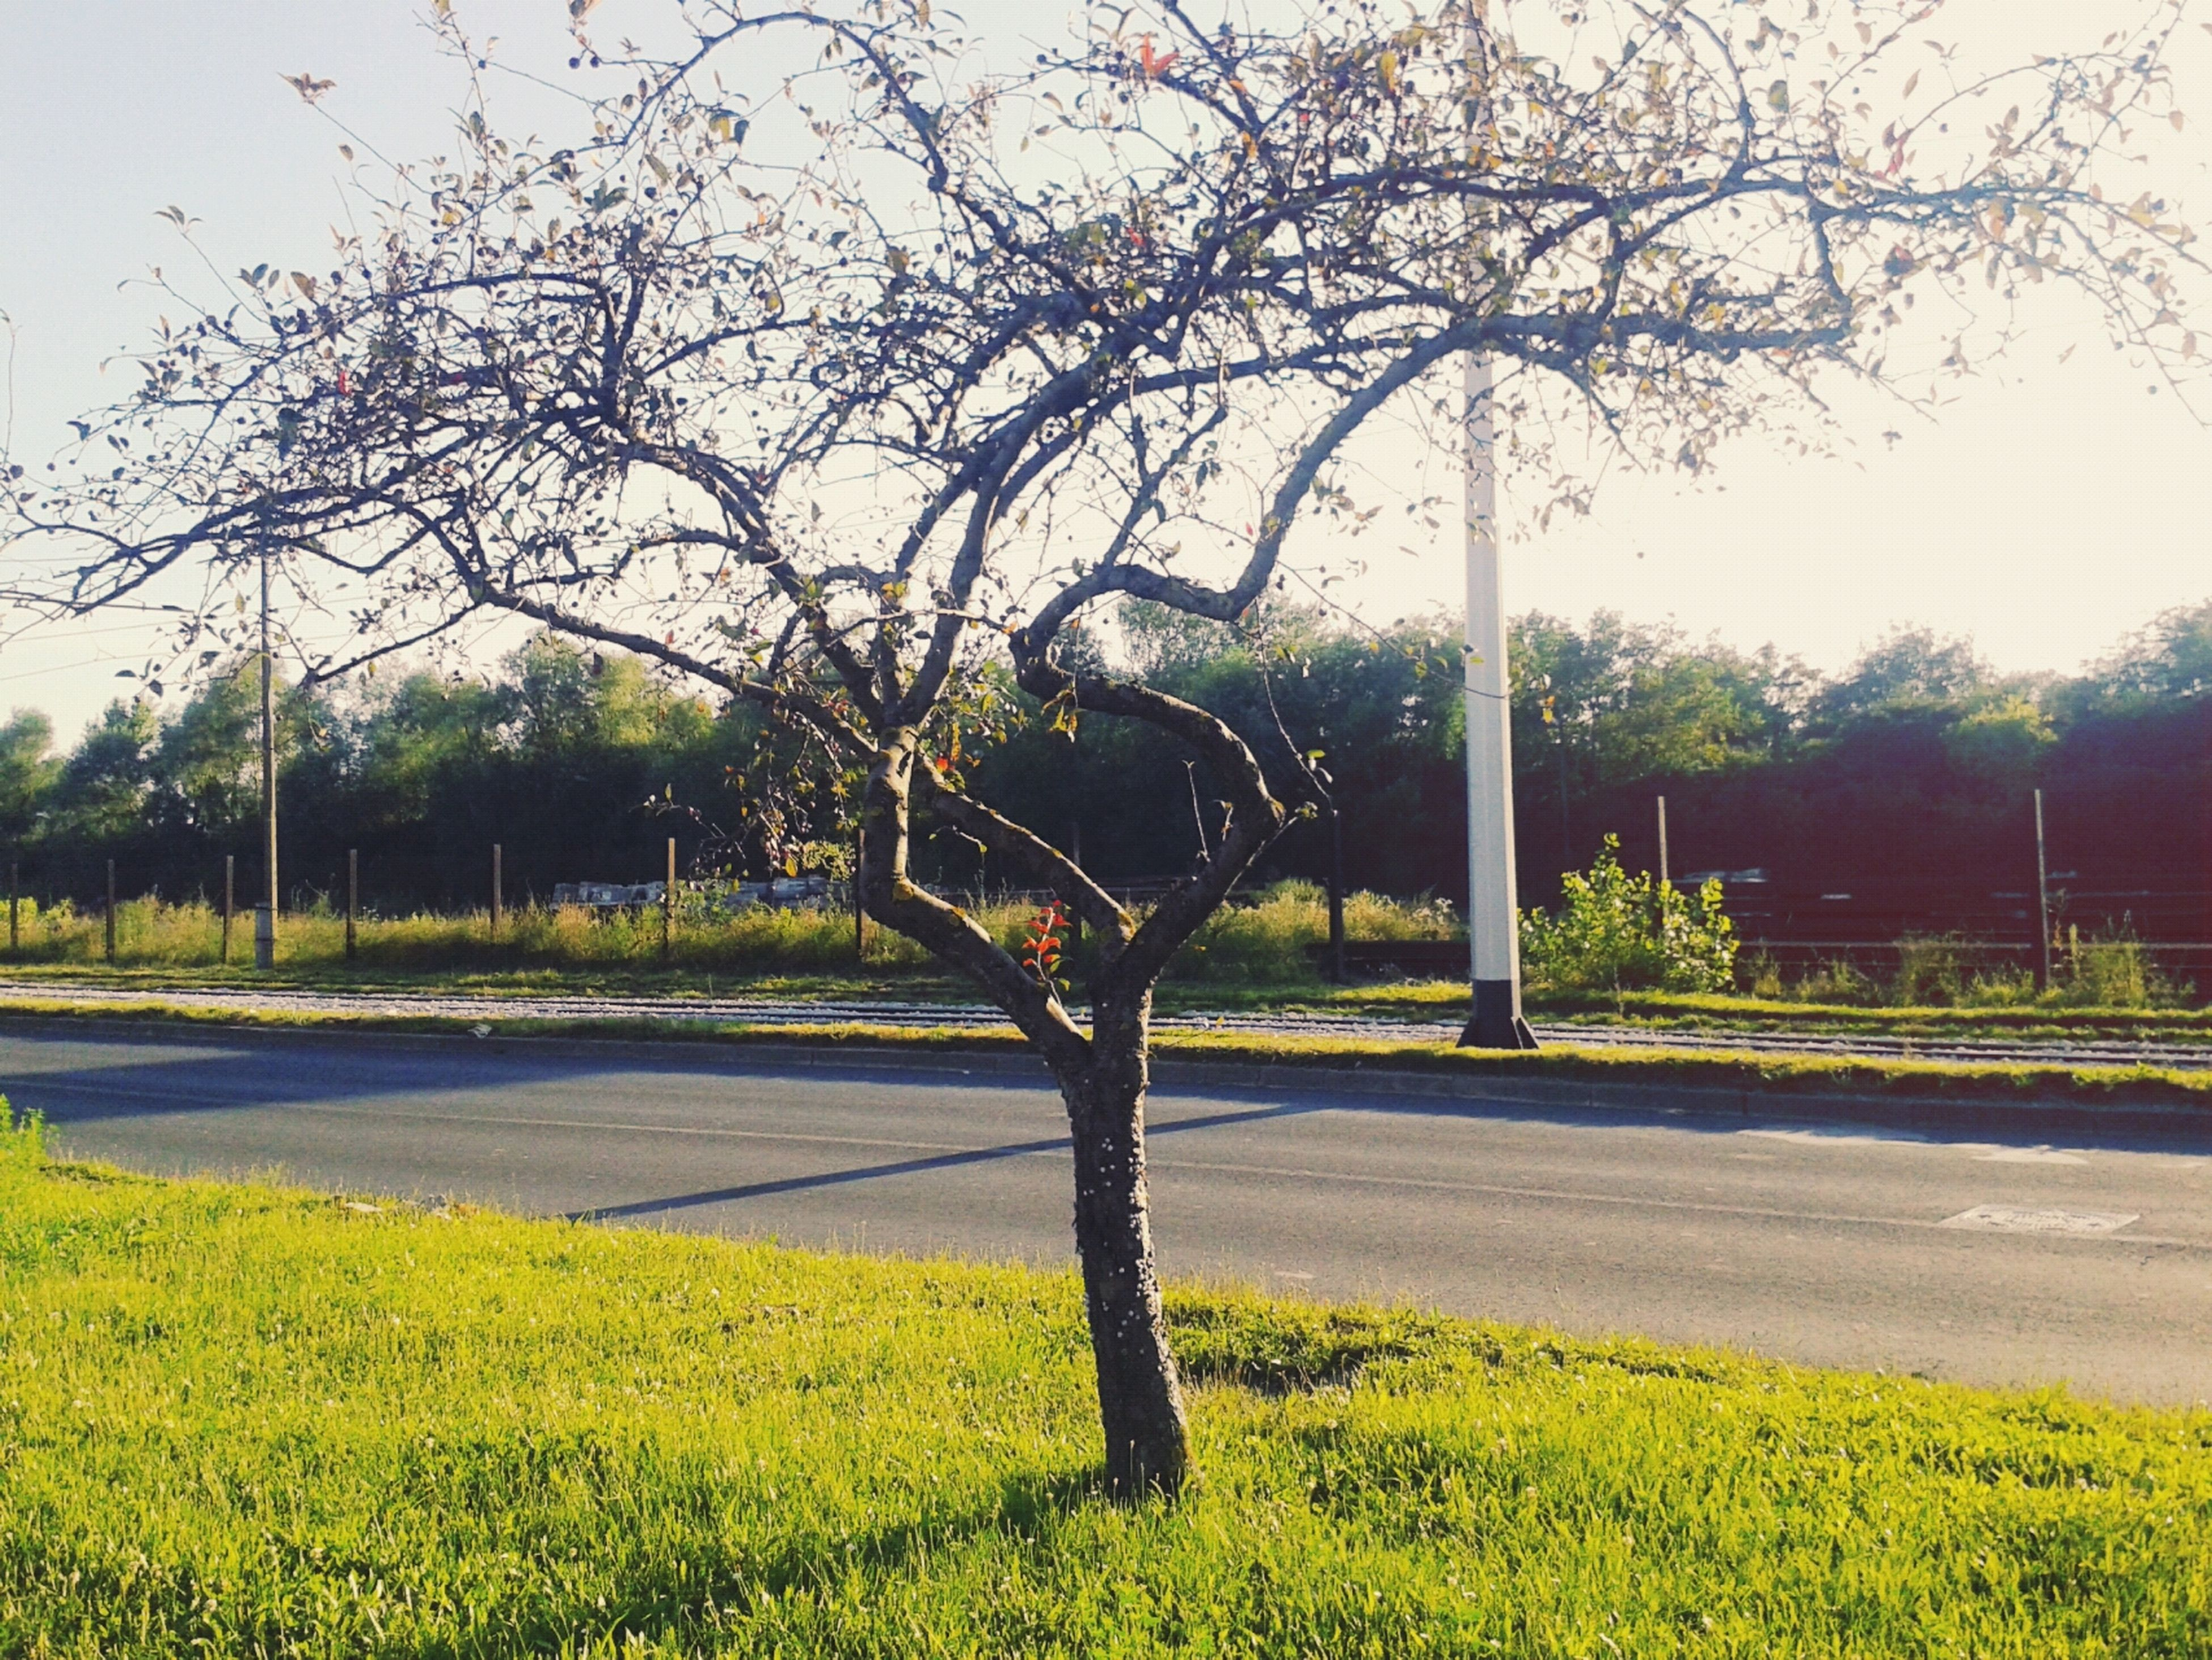 tree, grass, growth, tranquility, yellow, nature, field, tranquil scene, beauty in nature, branch, park - man made space, flower, clear sky, green color, sky, transportation, landscape, day, plant, road